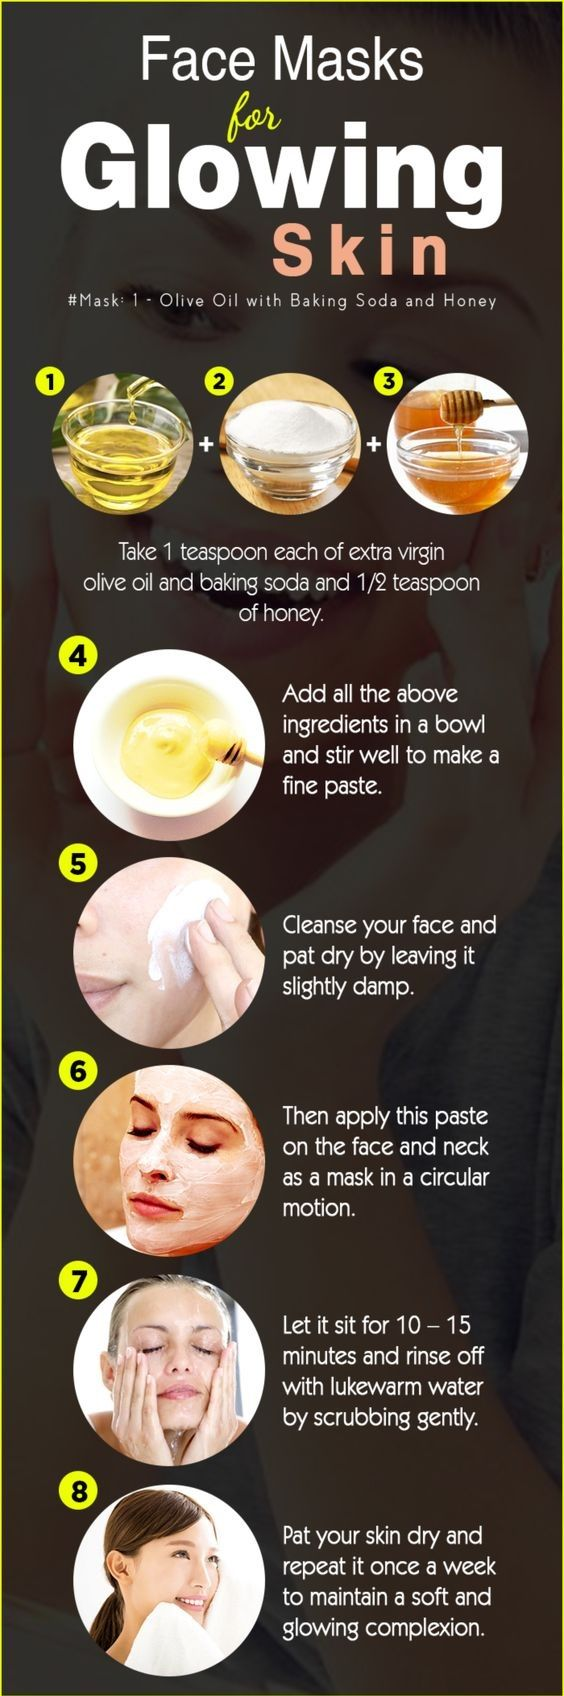 Home Remedies For Glowing Skin In Summer Glowing Skin Mask Skin Mask Natural Skin Care